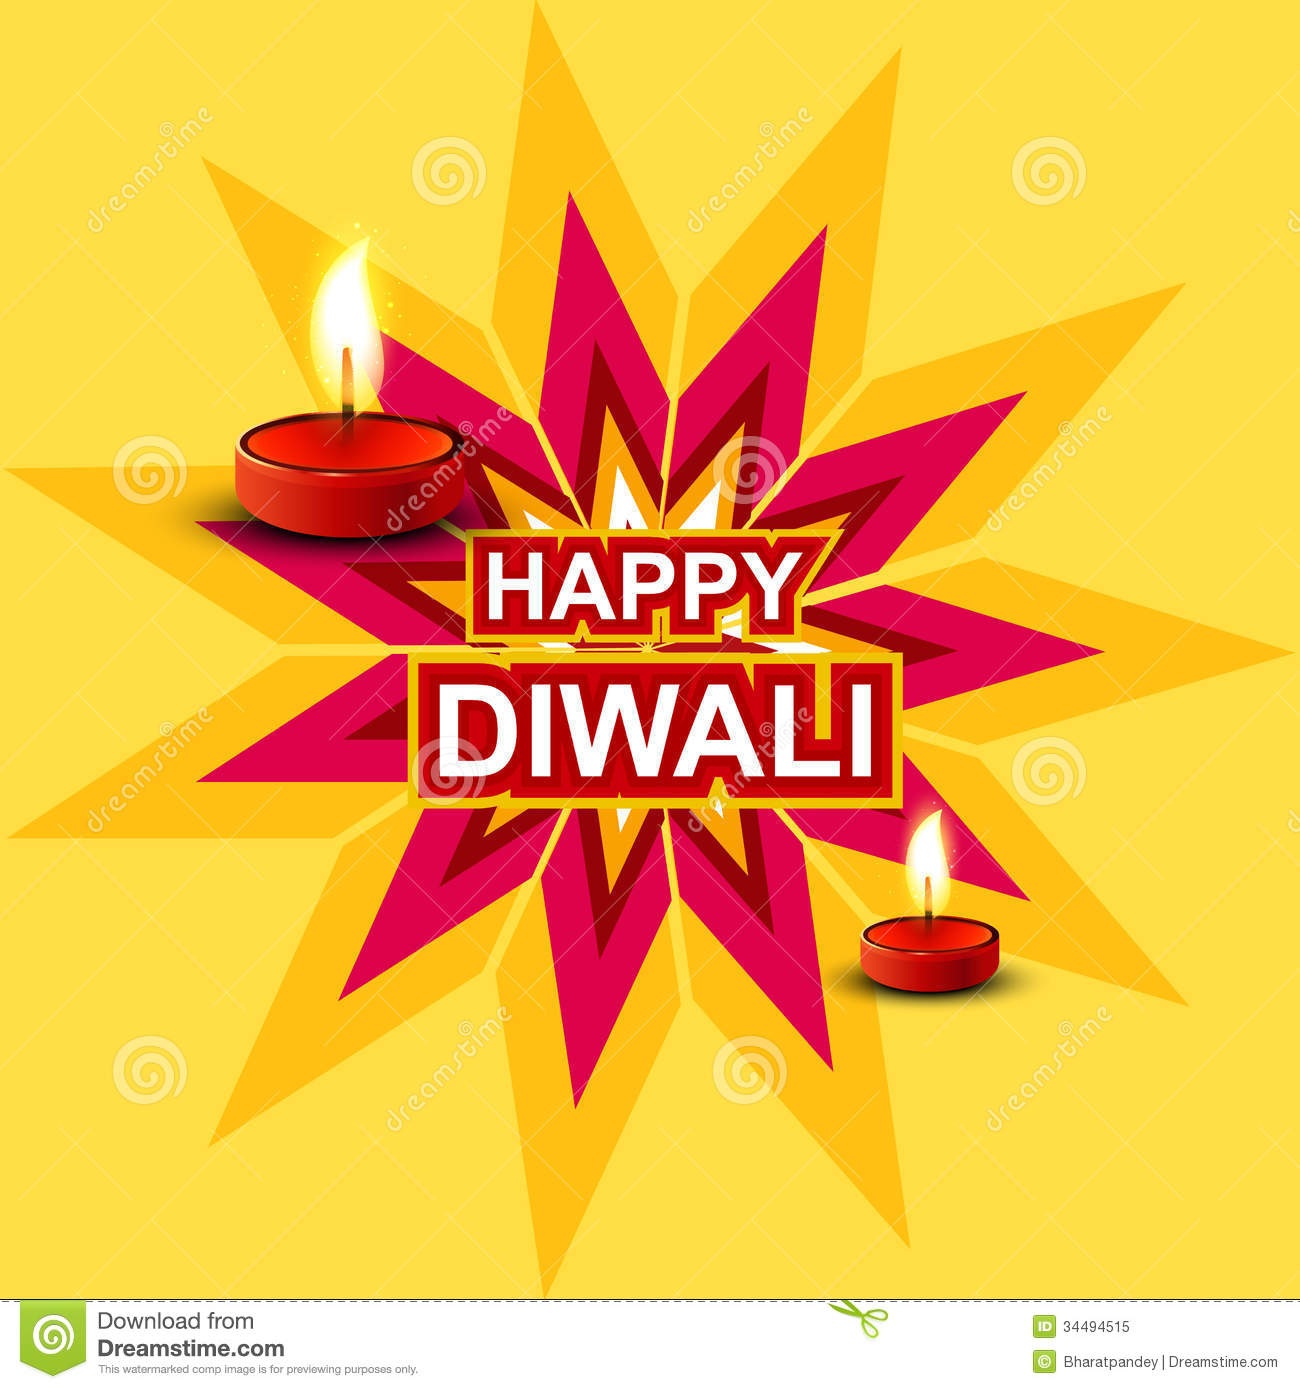 Colorful diwali greeting card stock illustration illustration of colorful diwali greeting card kristyandbryce Image collections